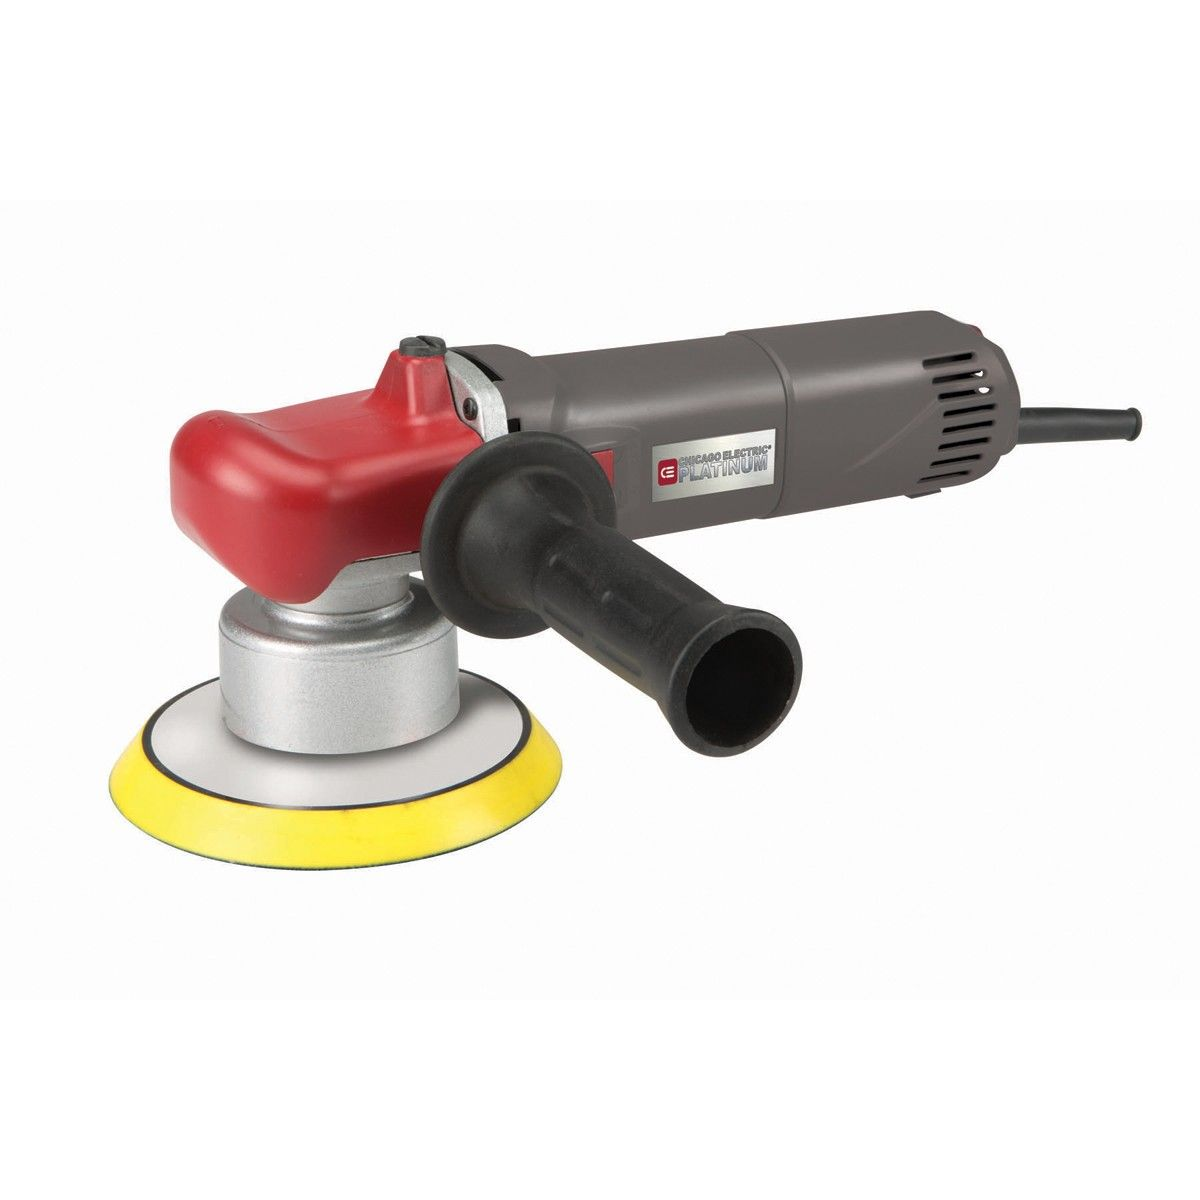 Harbor Freight Variable Speed Dual Action Polisher 39 99 Ac Dual Action Polisher Best Cordless Circular Saw Cordless Circular Saw